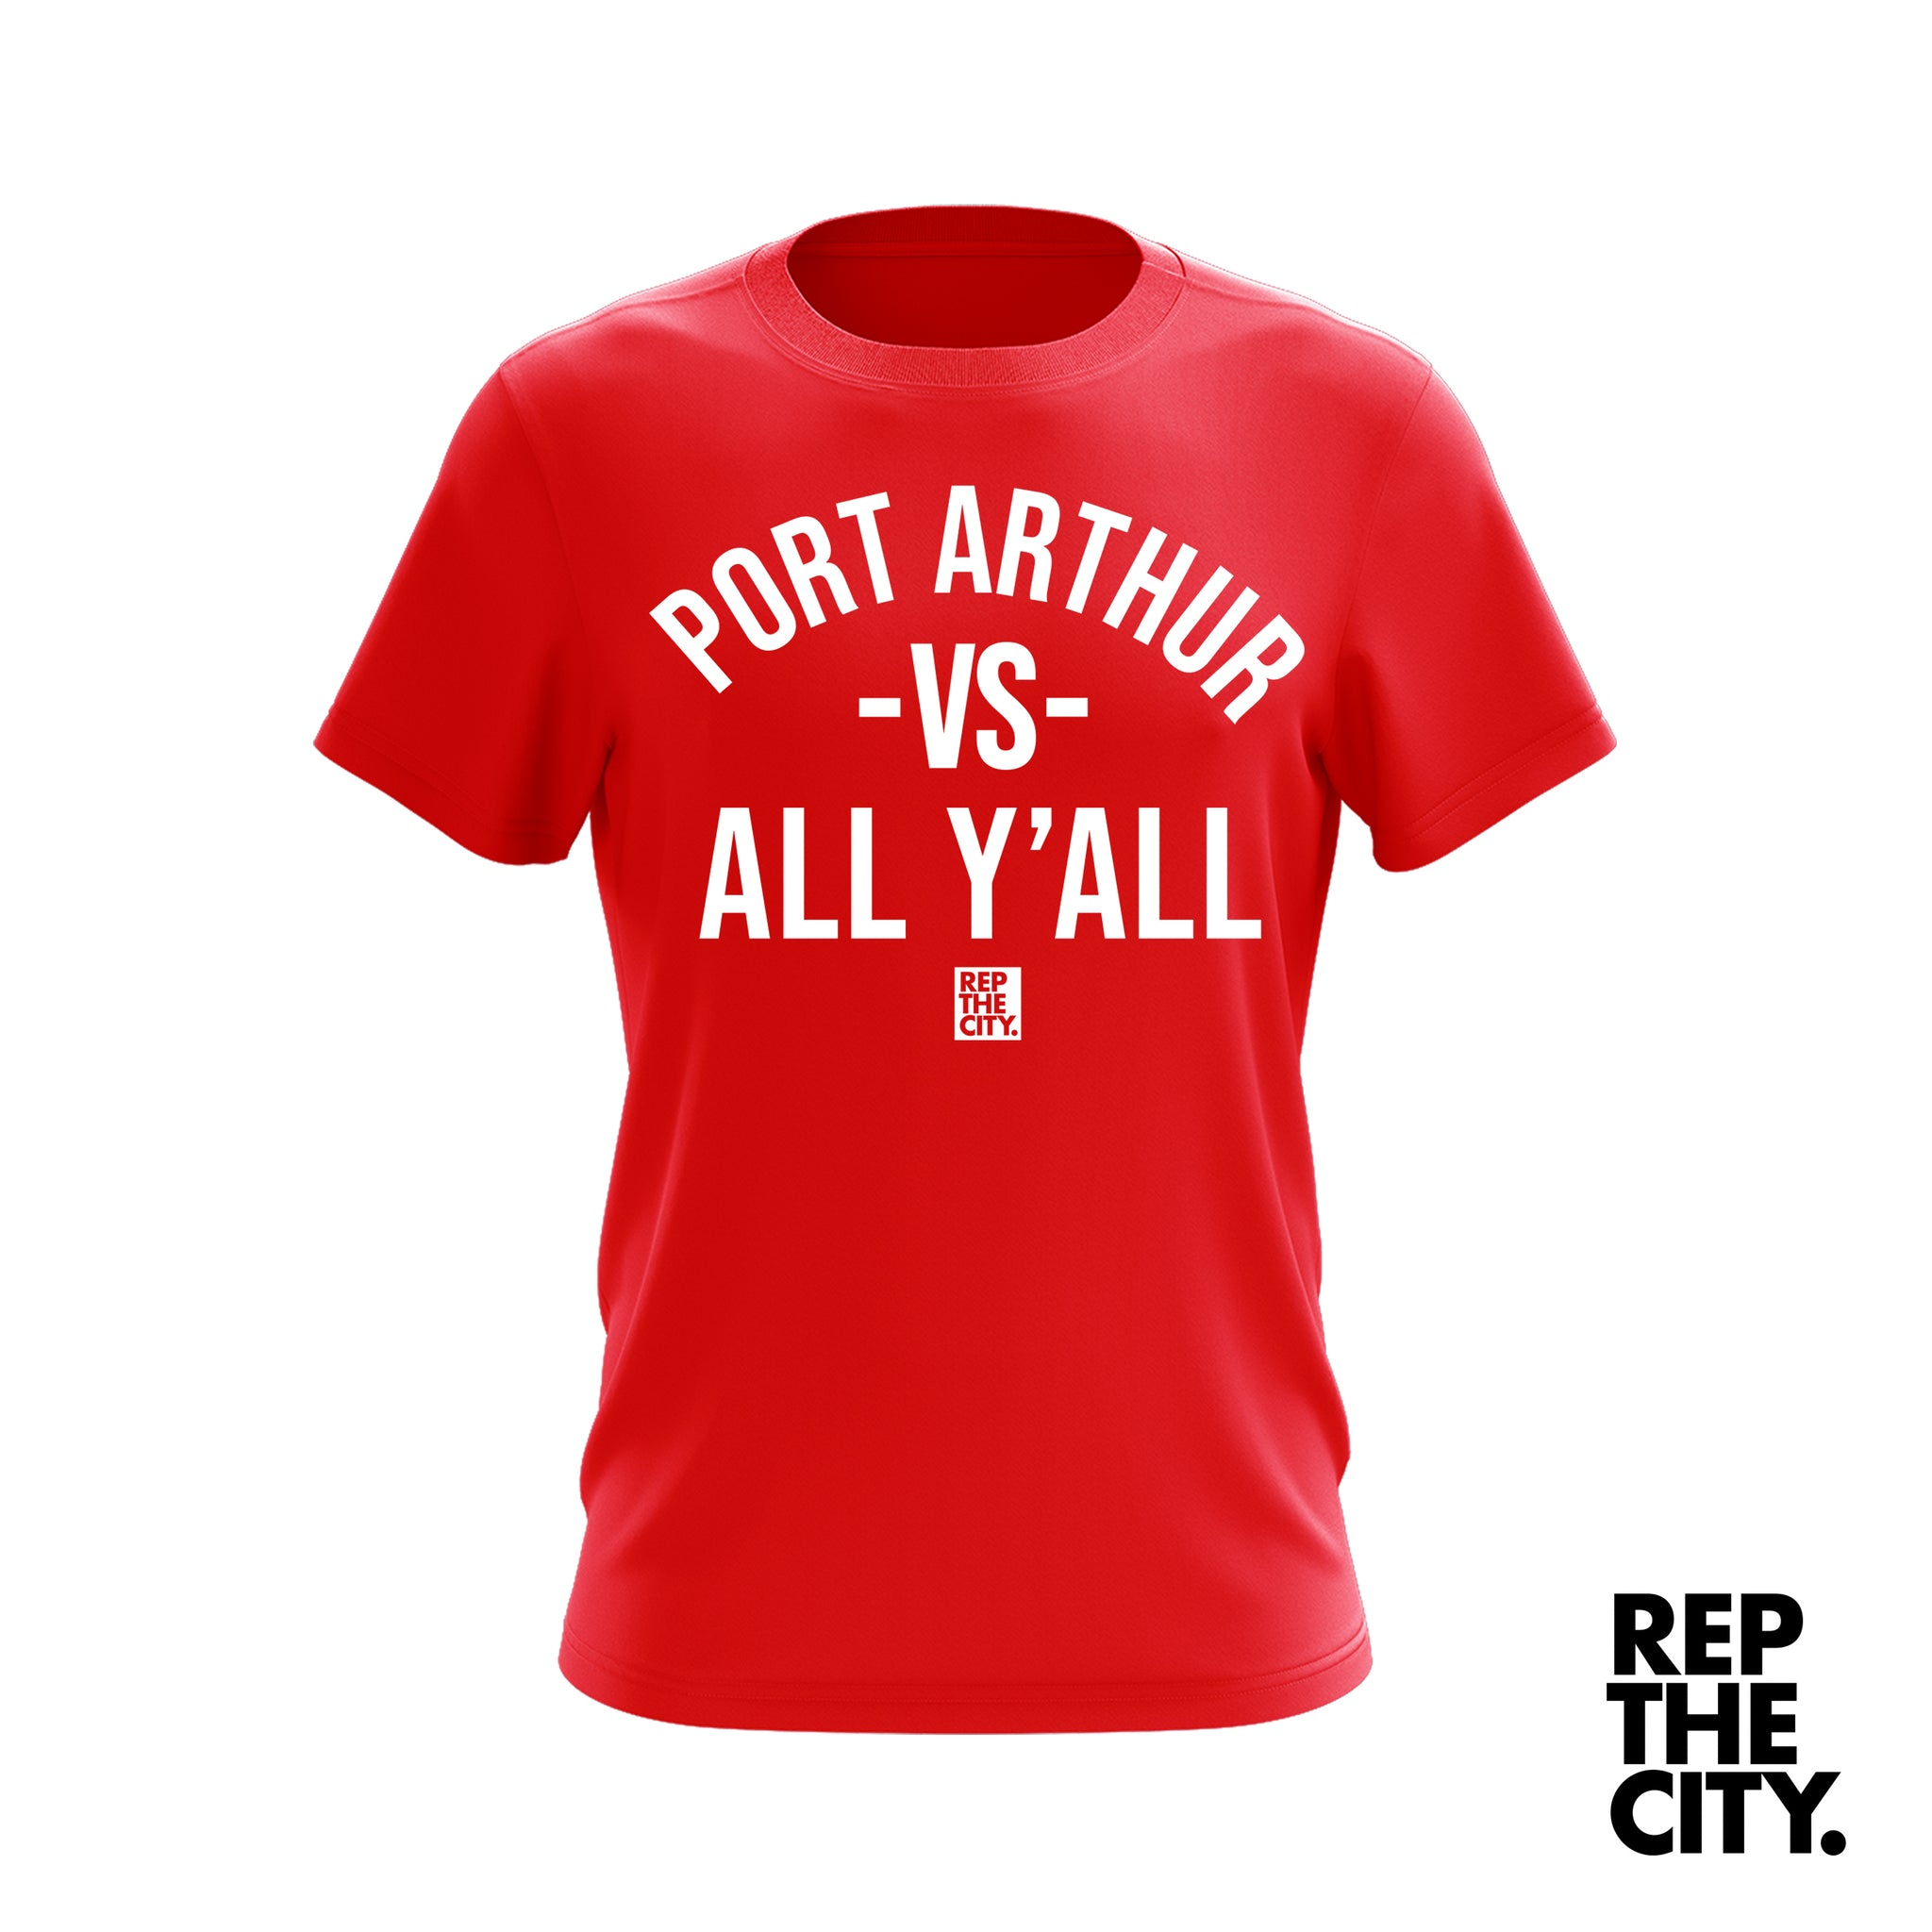 Port Arthur Vs All Y'all Tee